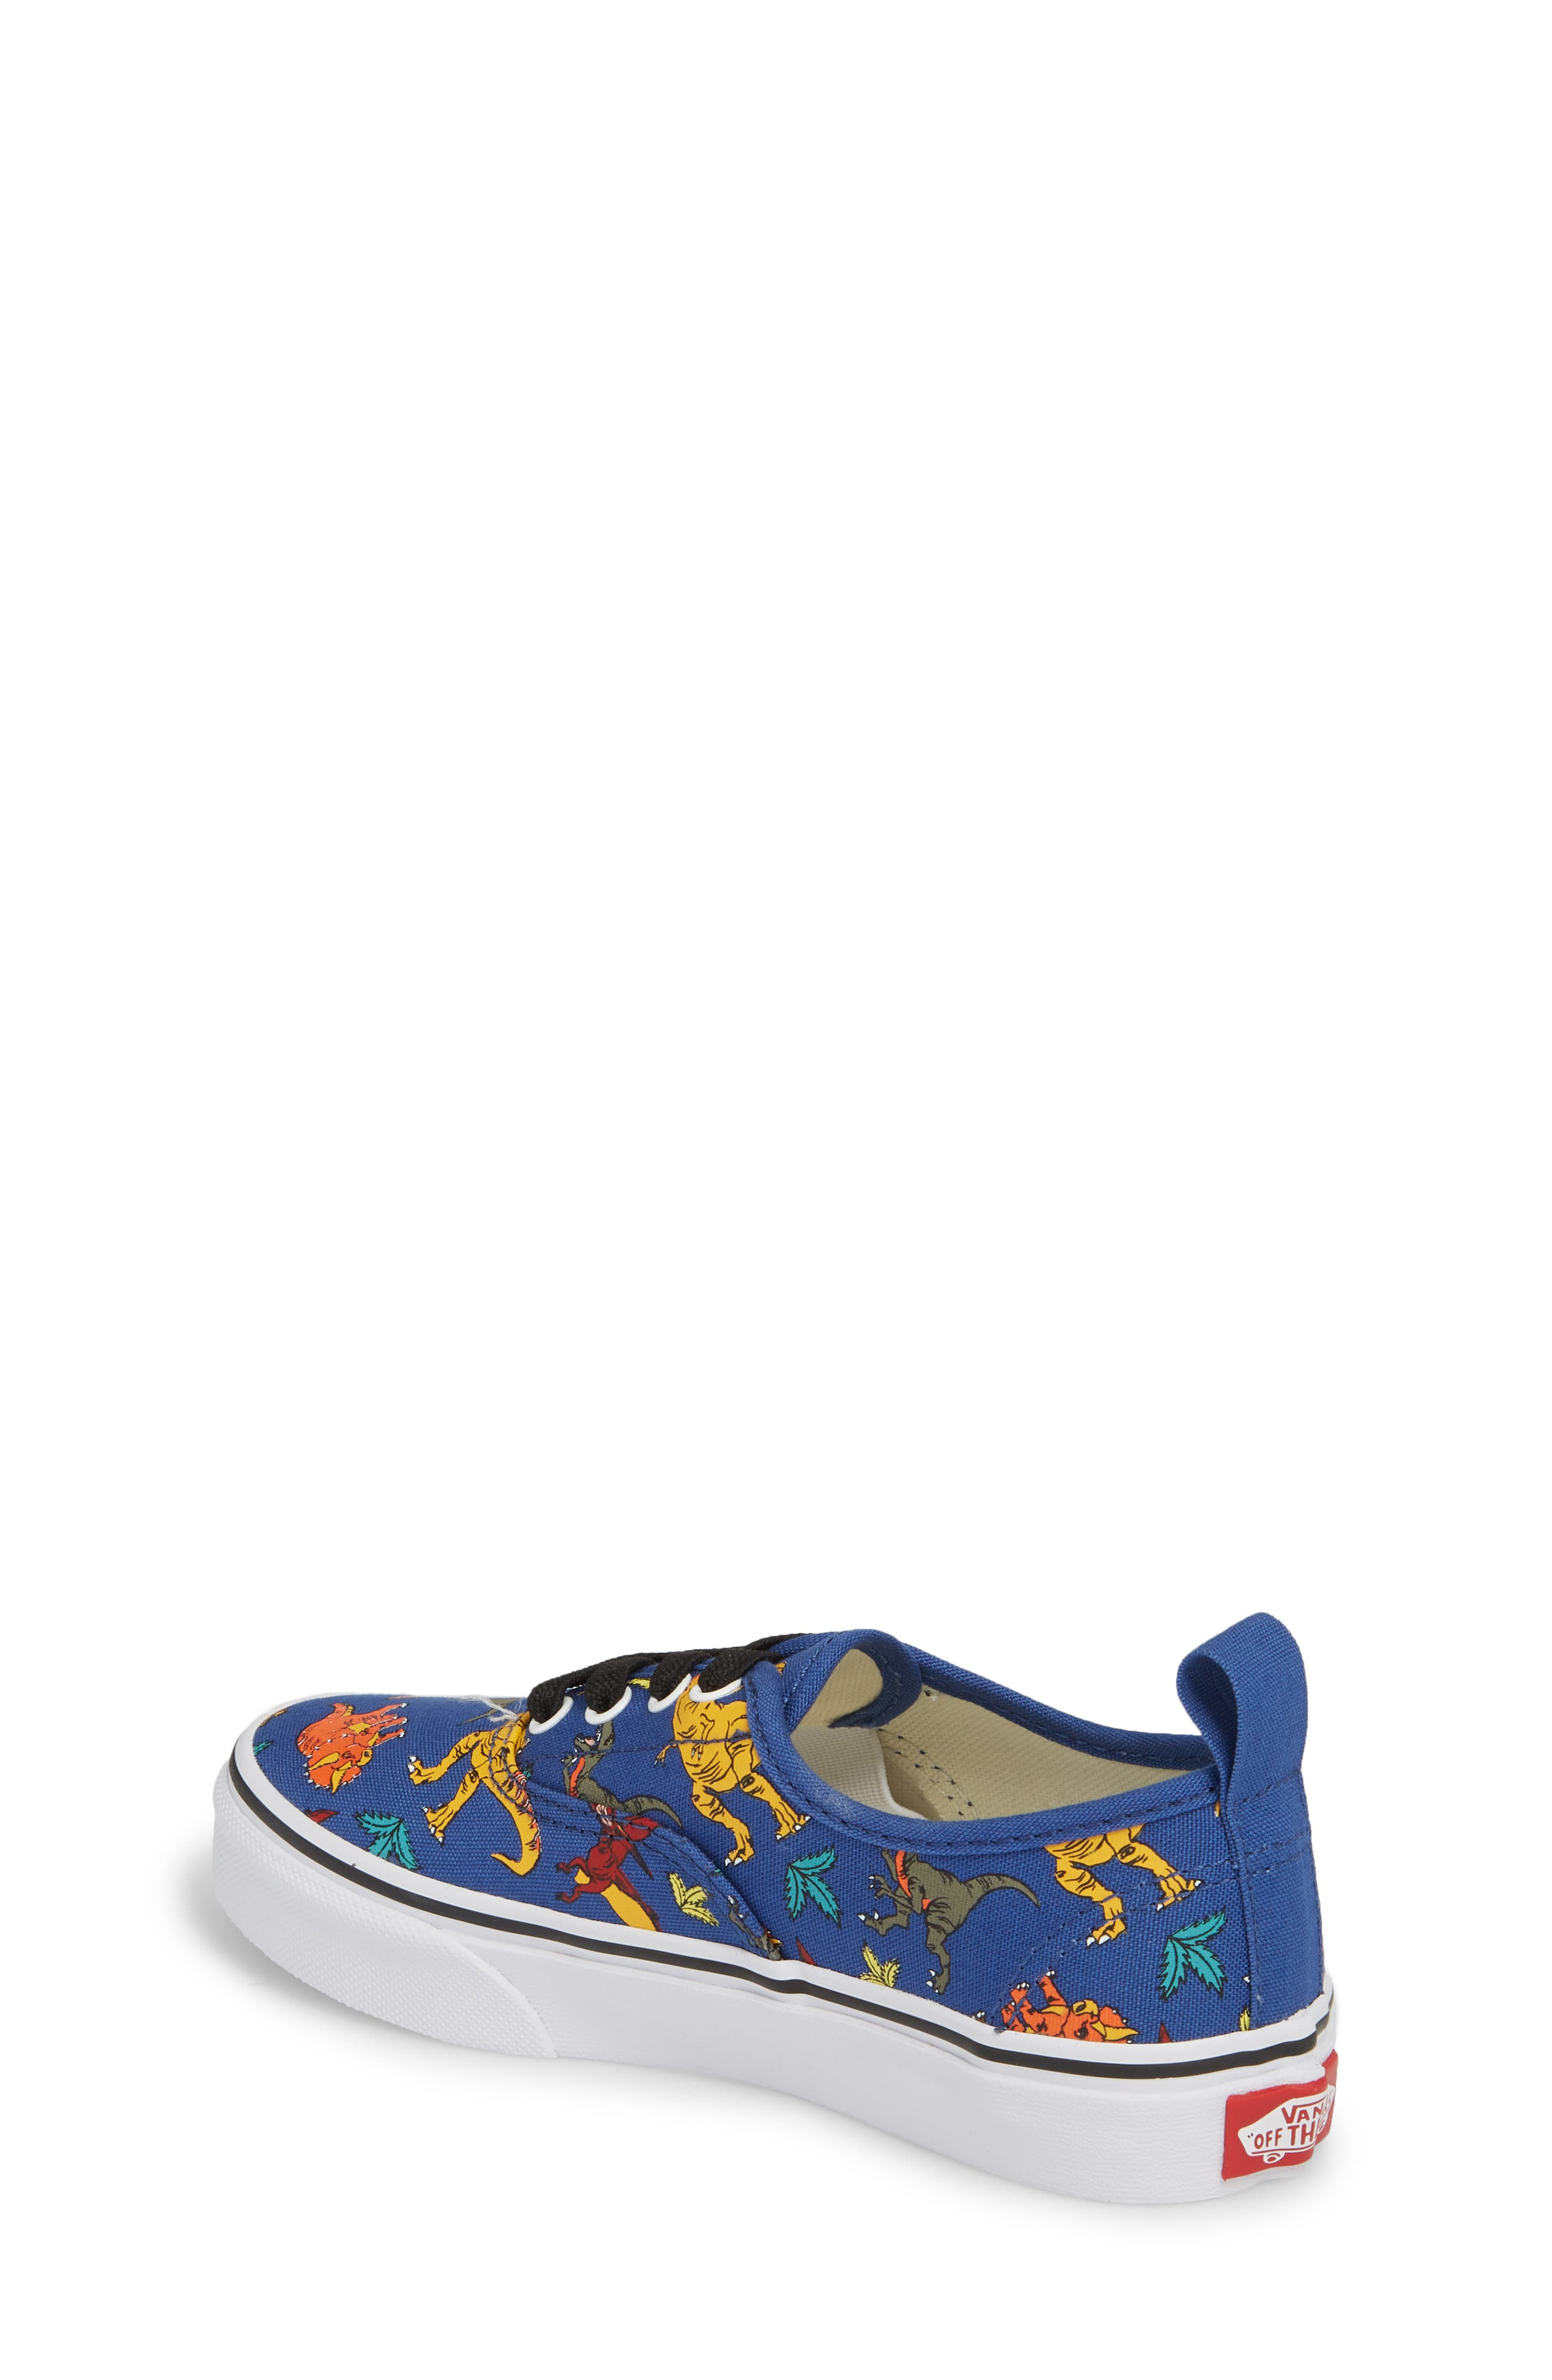 Authentic Elastic Lace Sneaker,                             Alternate thumbnail 2, color,                             Dinosaur Multi/ White